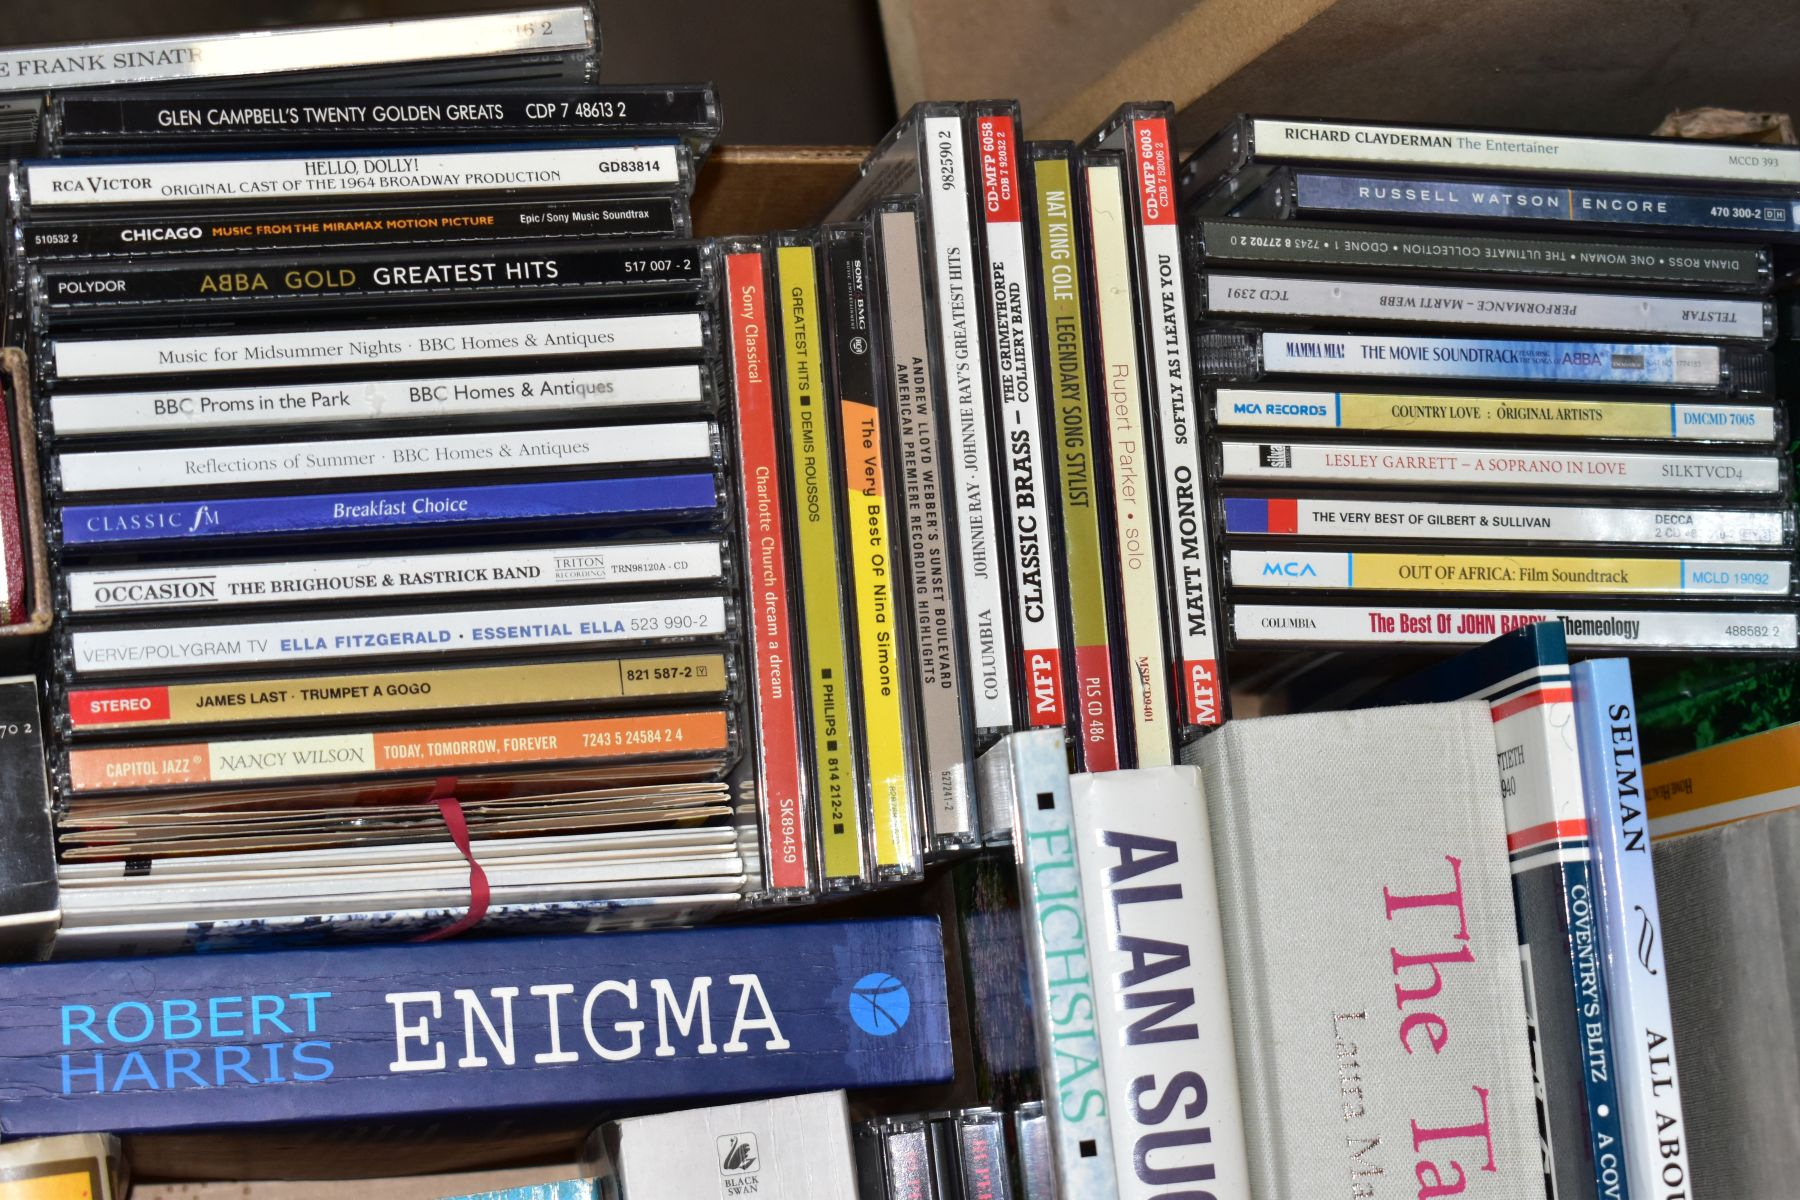 TWO BOXES OF BOOKS AND CDS including cookery interest, gardening interest, novels, etc, Ward - Image 4 of 4